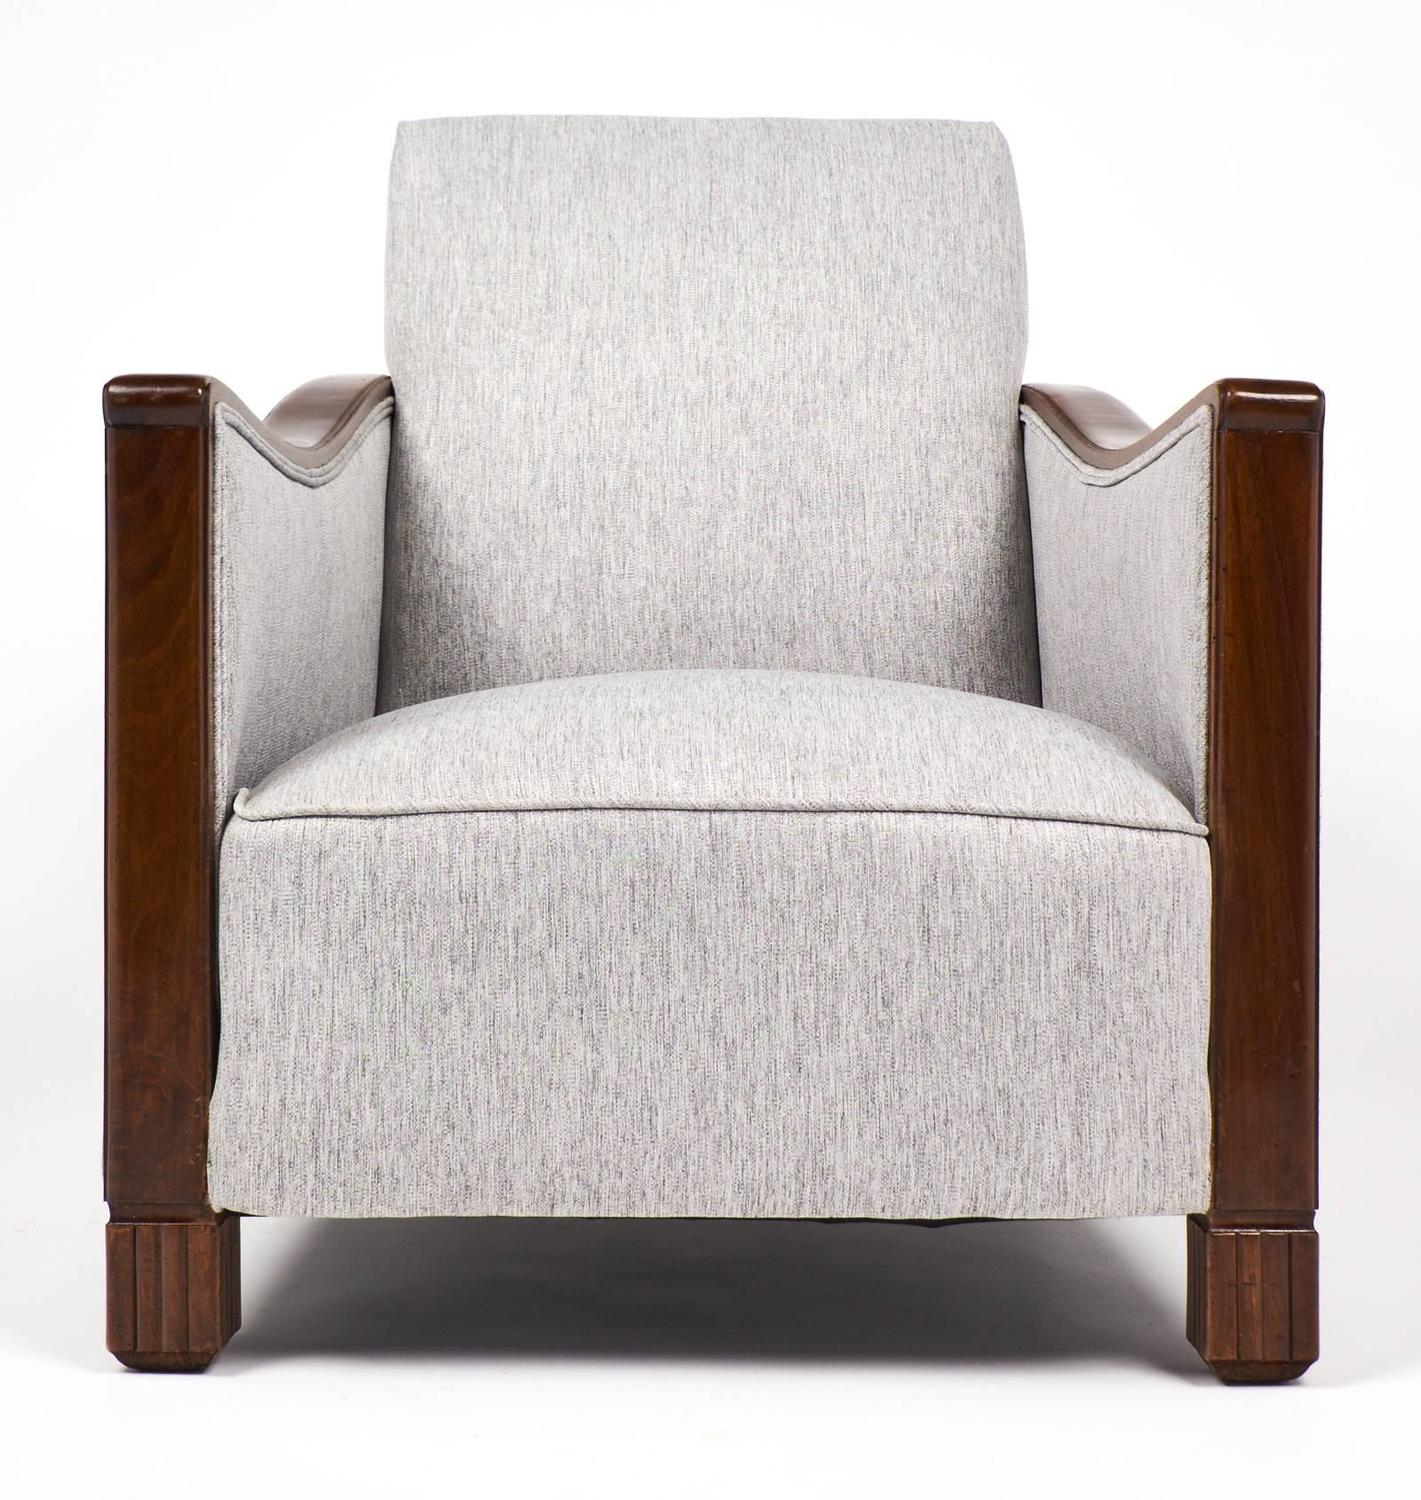 French art deco period walnut armchairs at 1stdibs for Art deco period